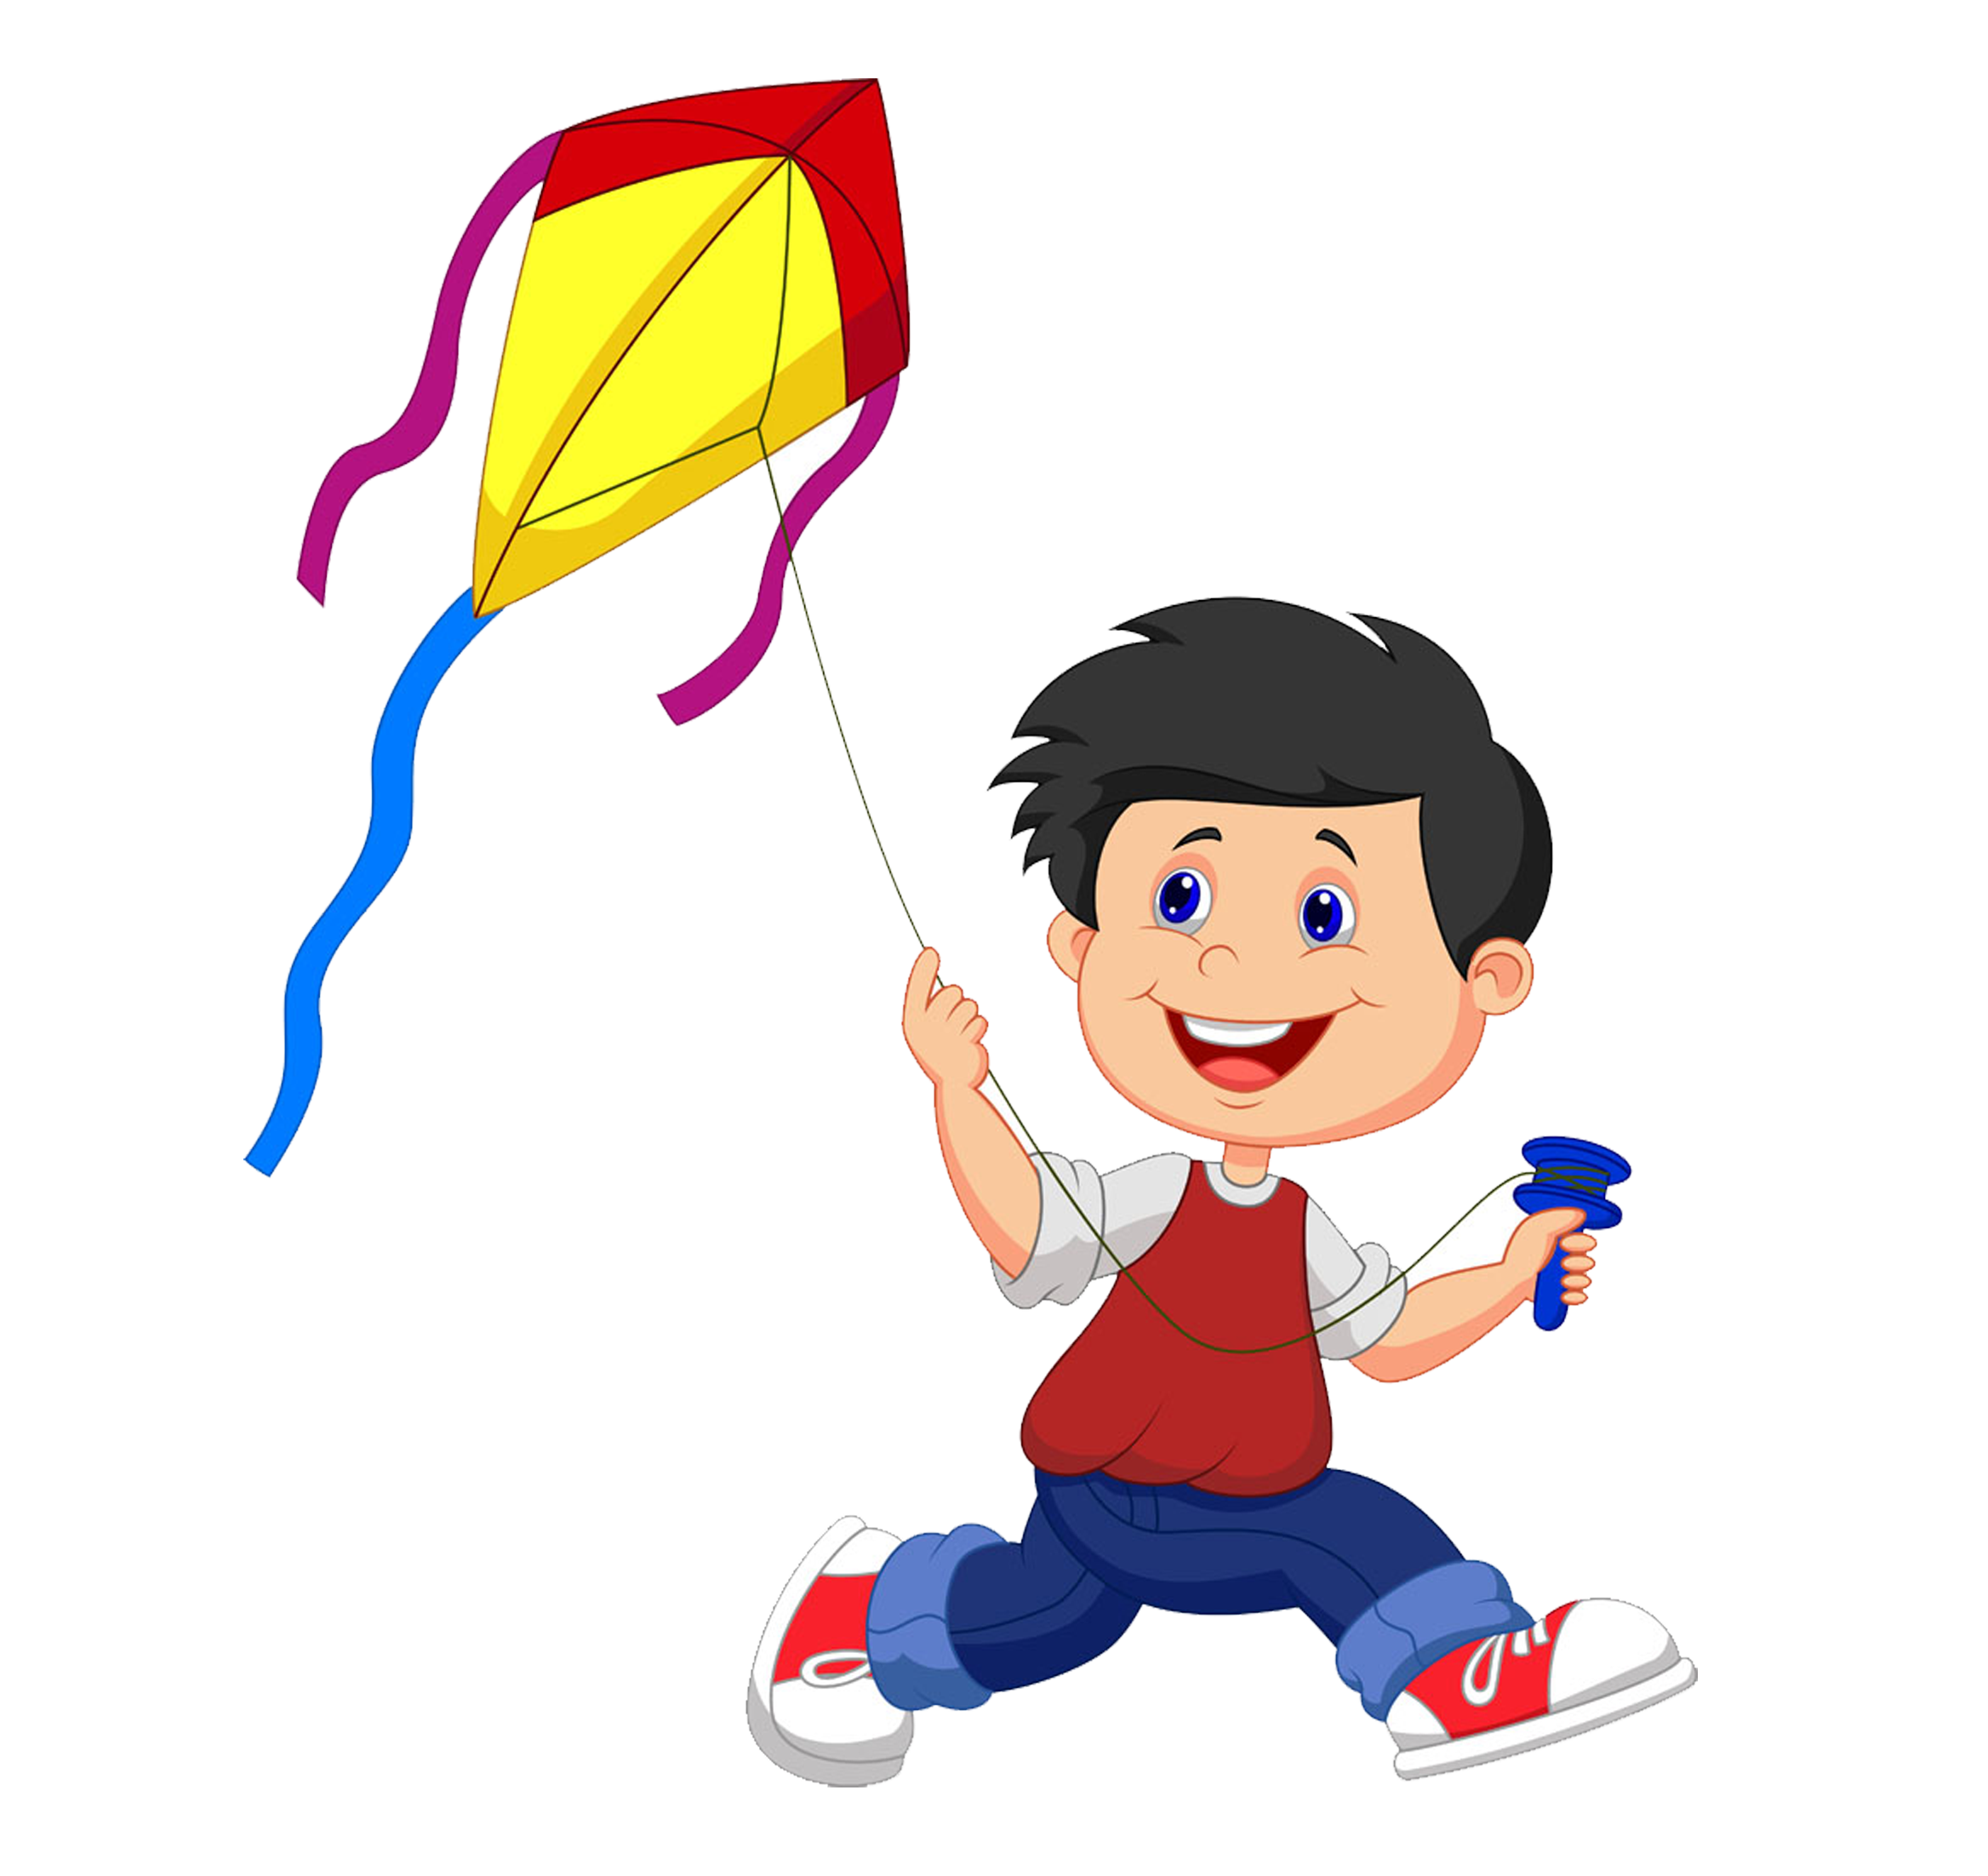 black and white stock Cartoon illustration small people. Marching clipart fly kite.